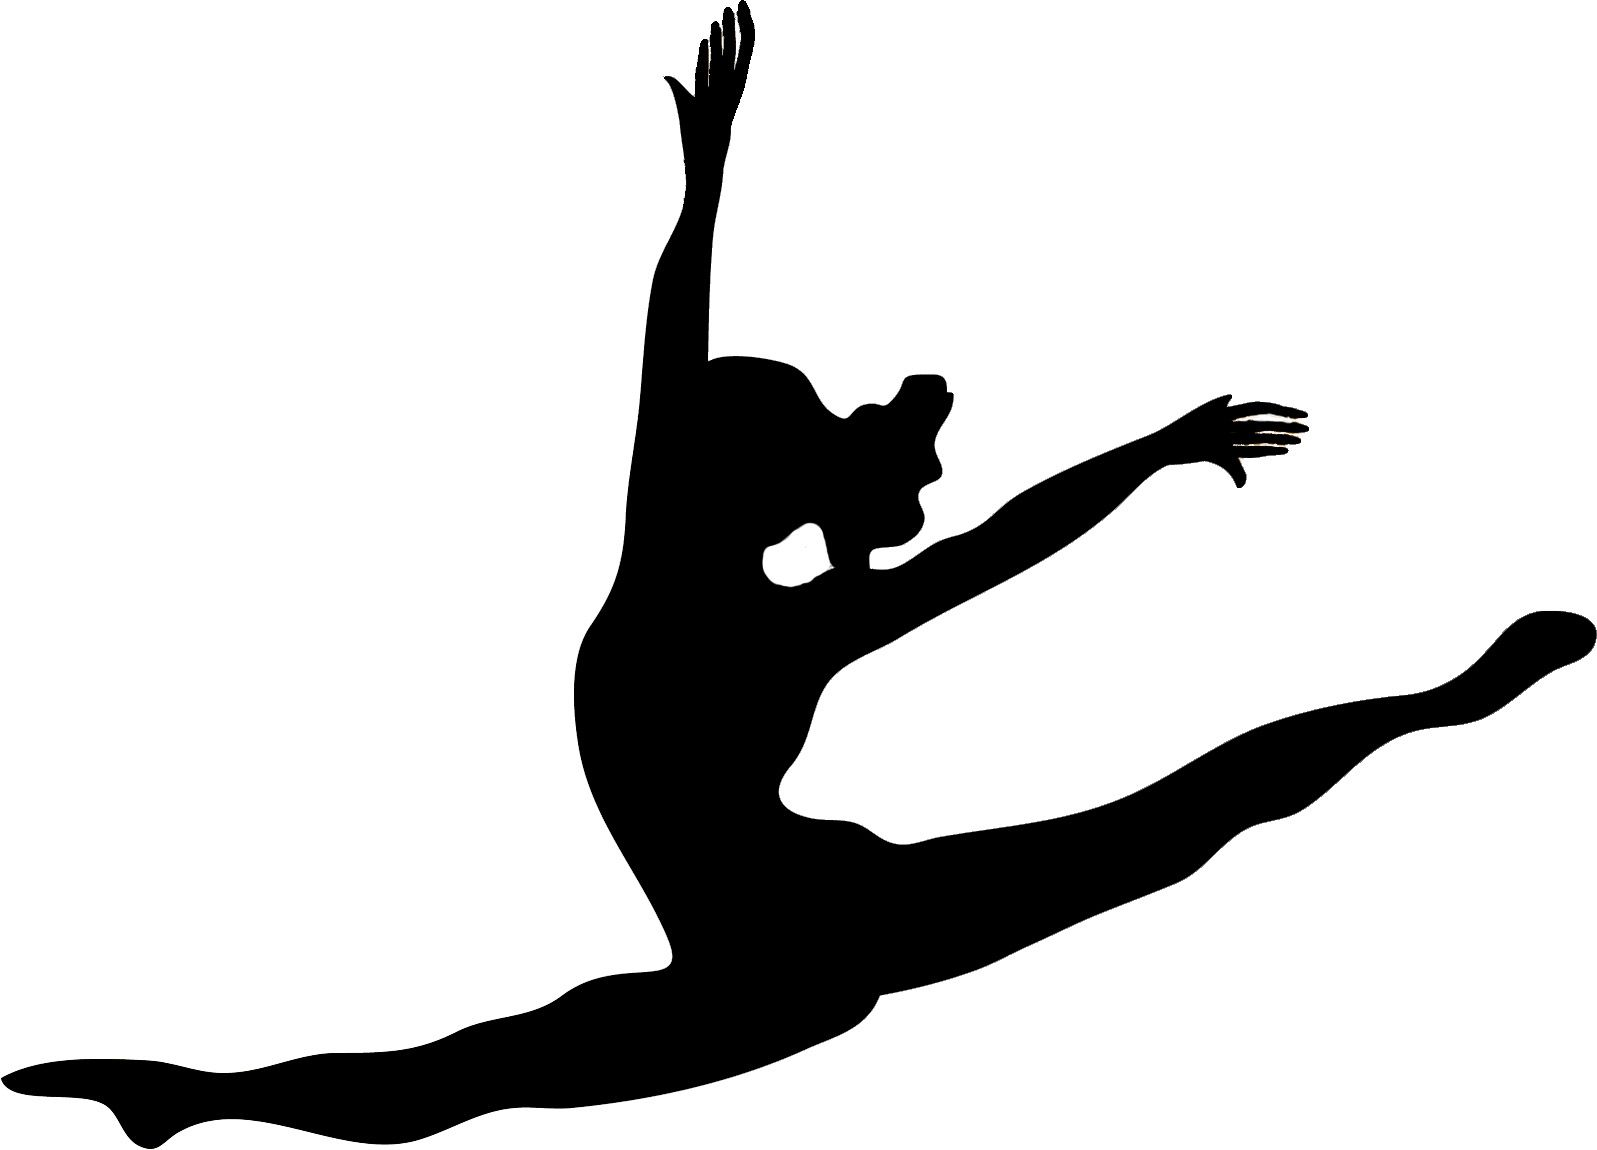 1597x1150 Images For Gt Modern Dance Silhouettes Clip Art Birthday Party